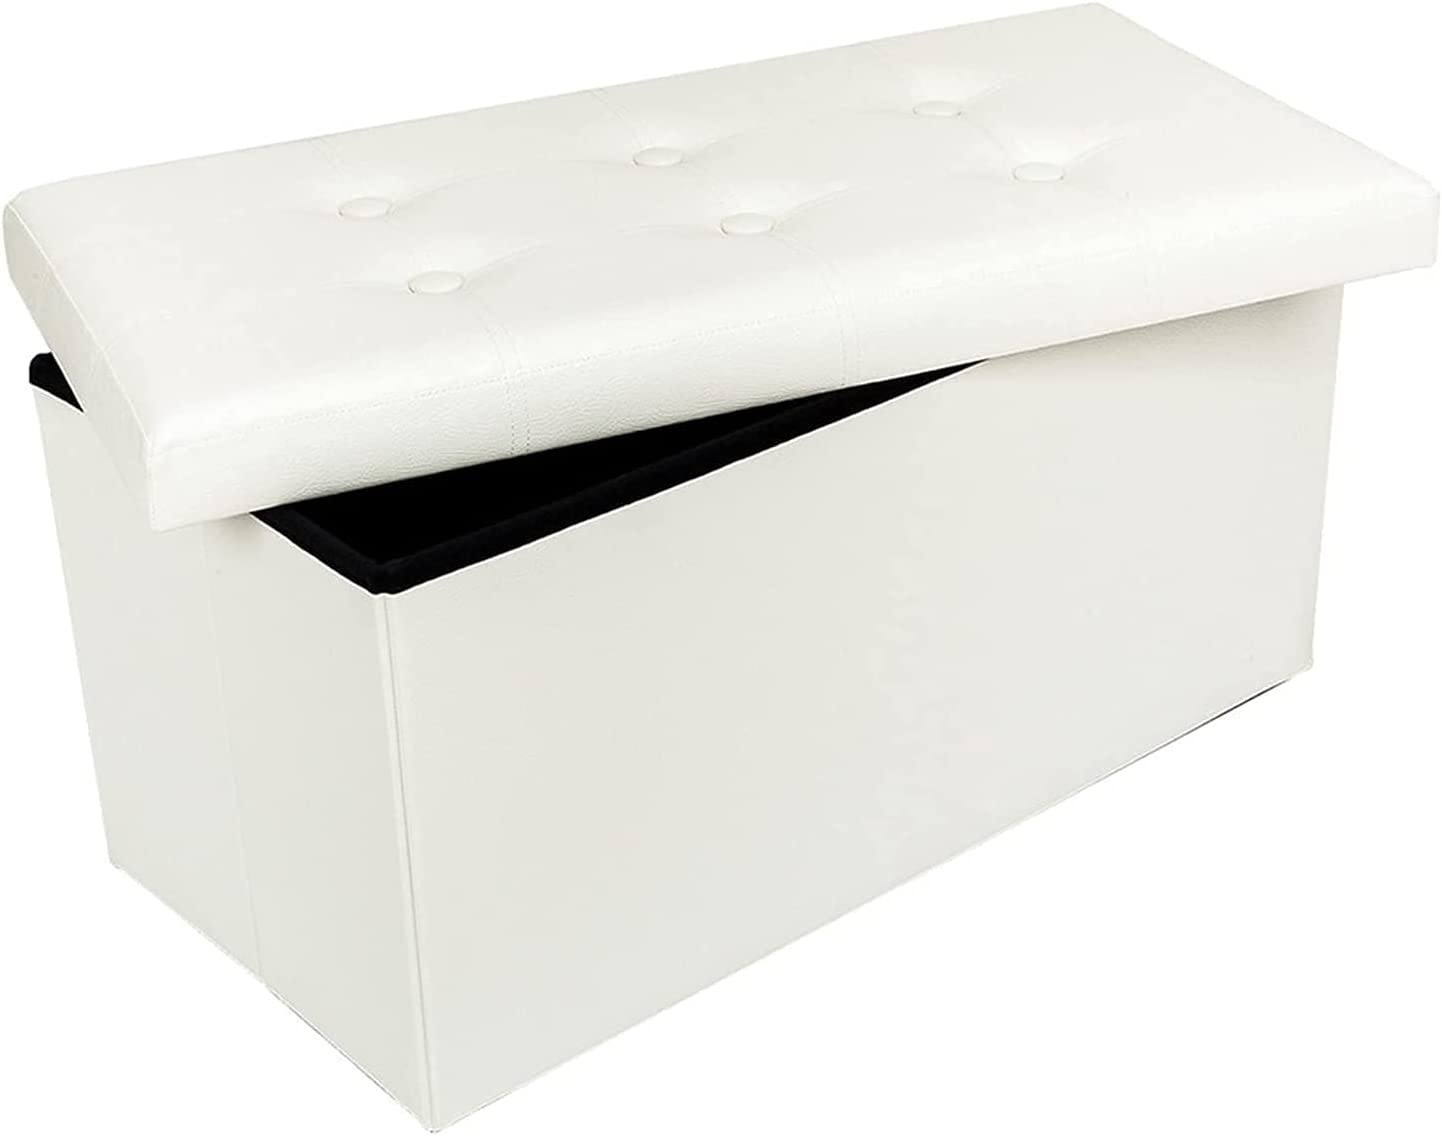 SEAL limited product HSJWOSA Practically PU lowest price Footstool with Leather